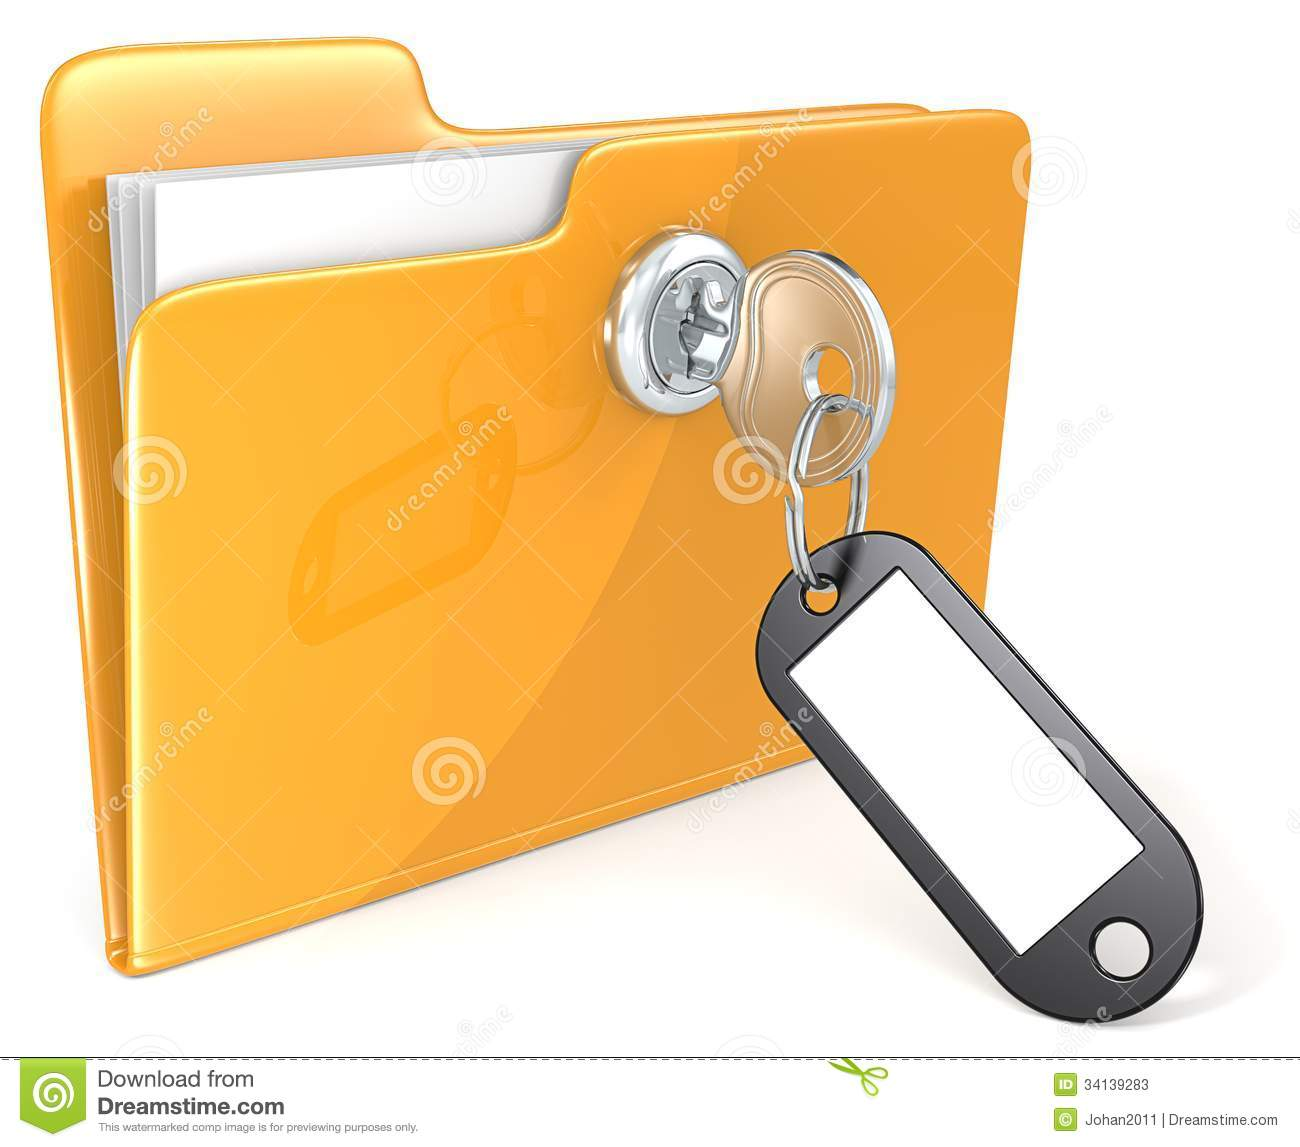 how to copy image from a secured pdf file